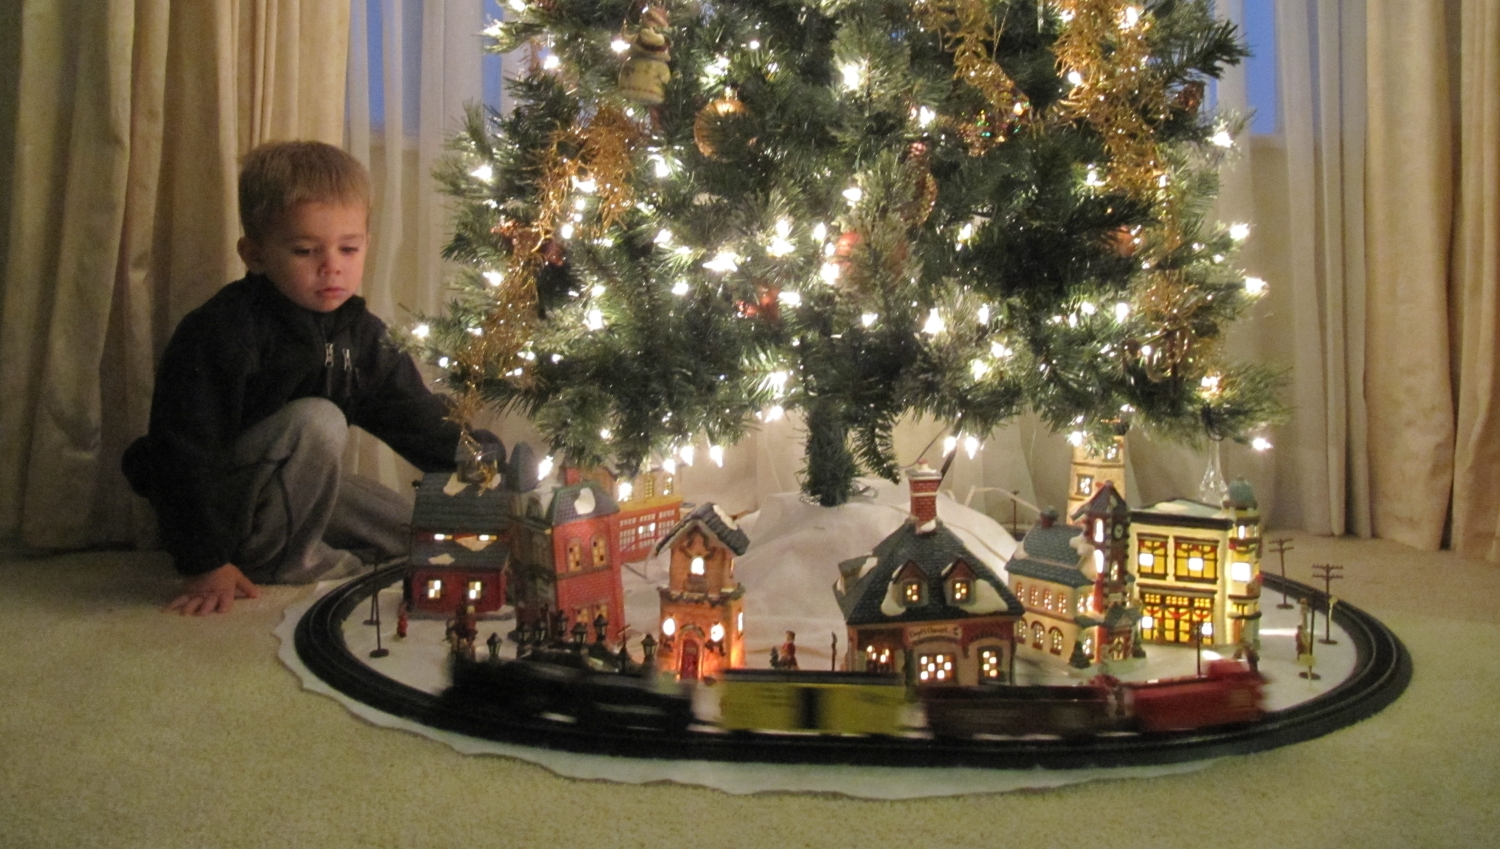 train_around_the_christmas_treejpg